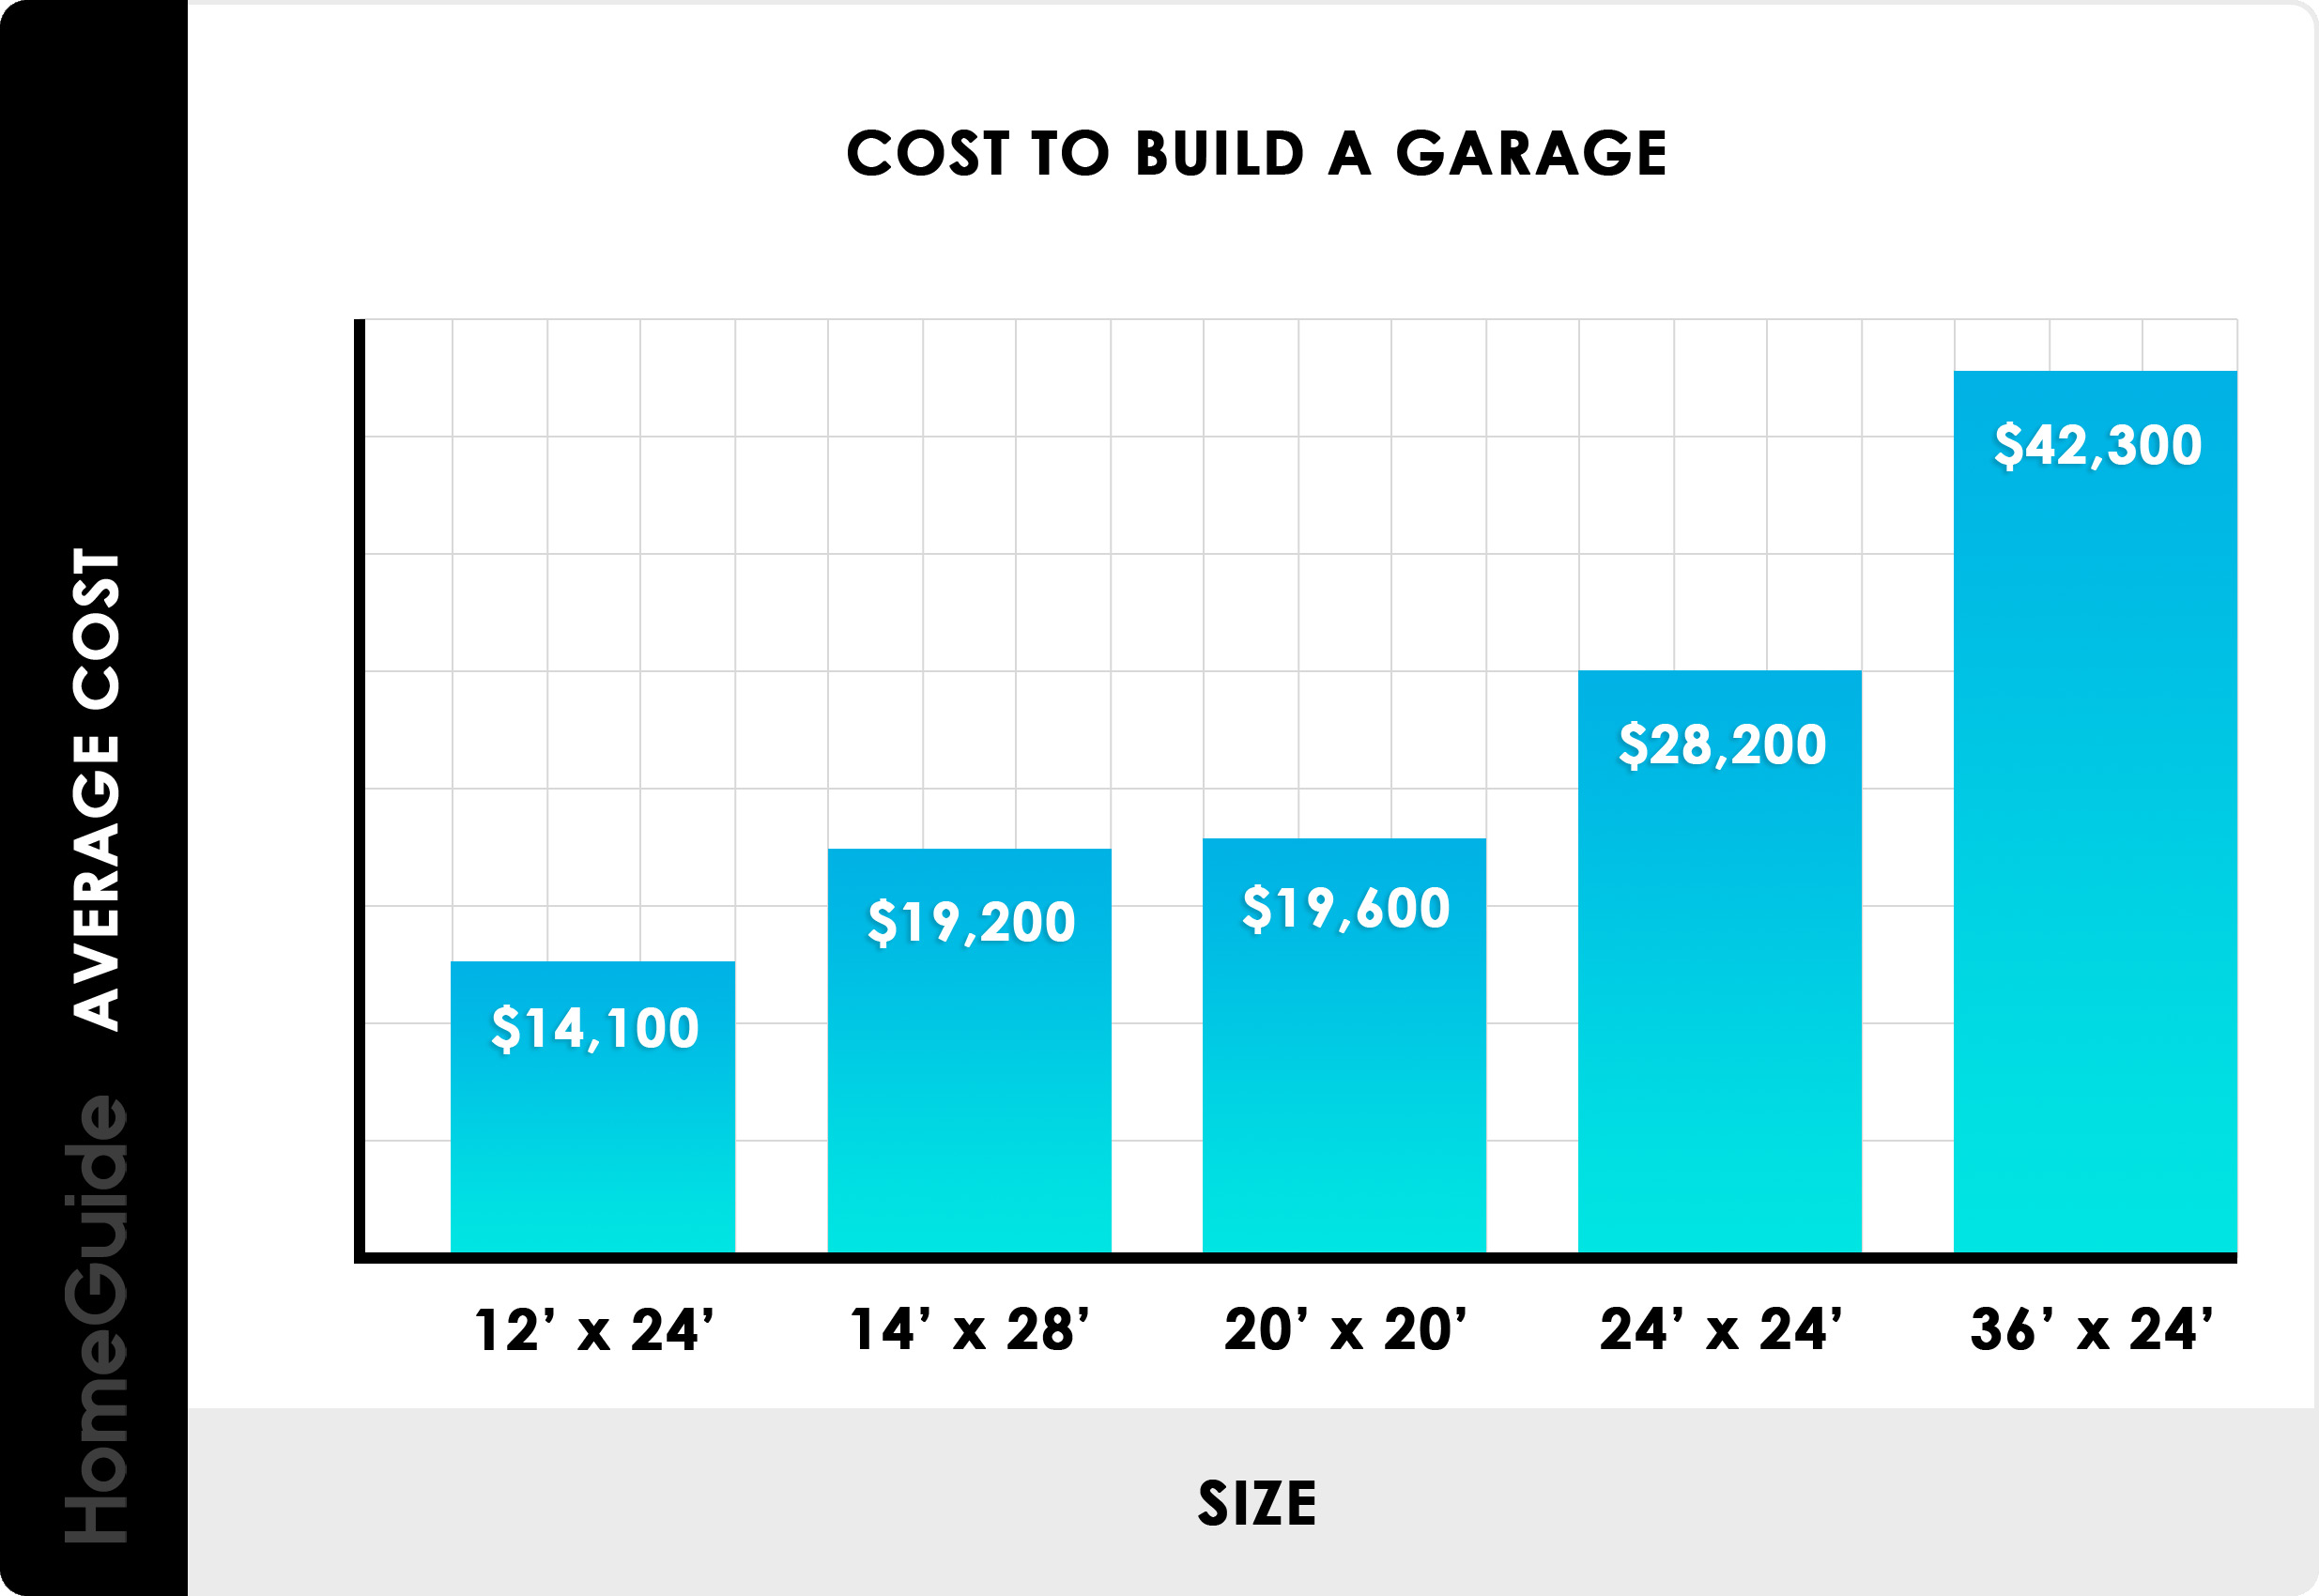 2019 Cost To Build A Garage | 1, 2, and 3 Car Prices Per